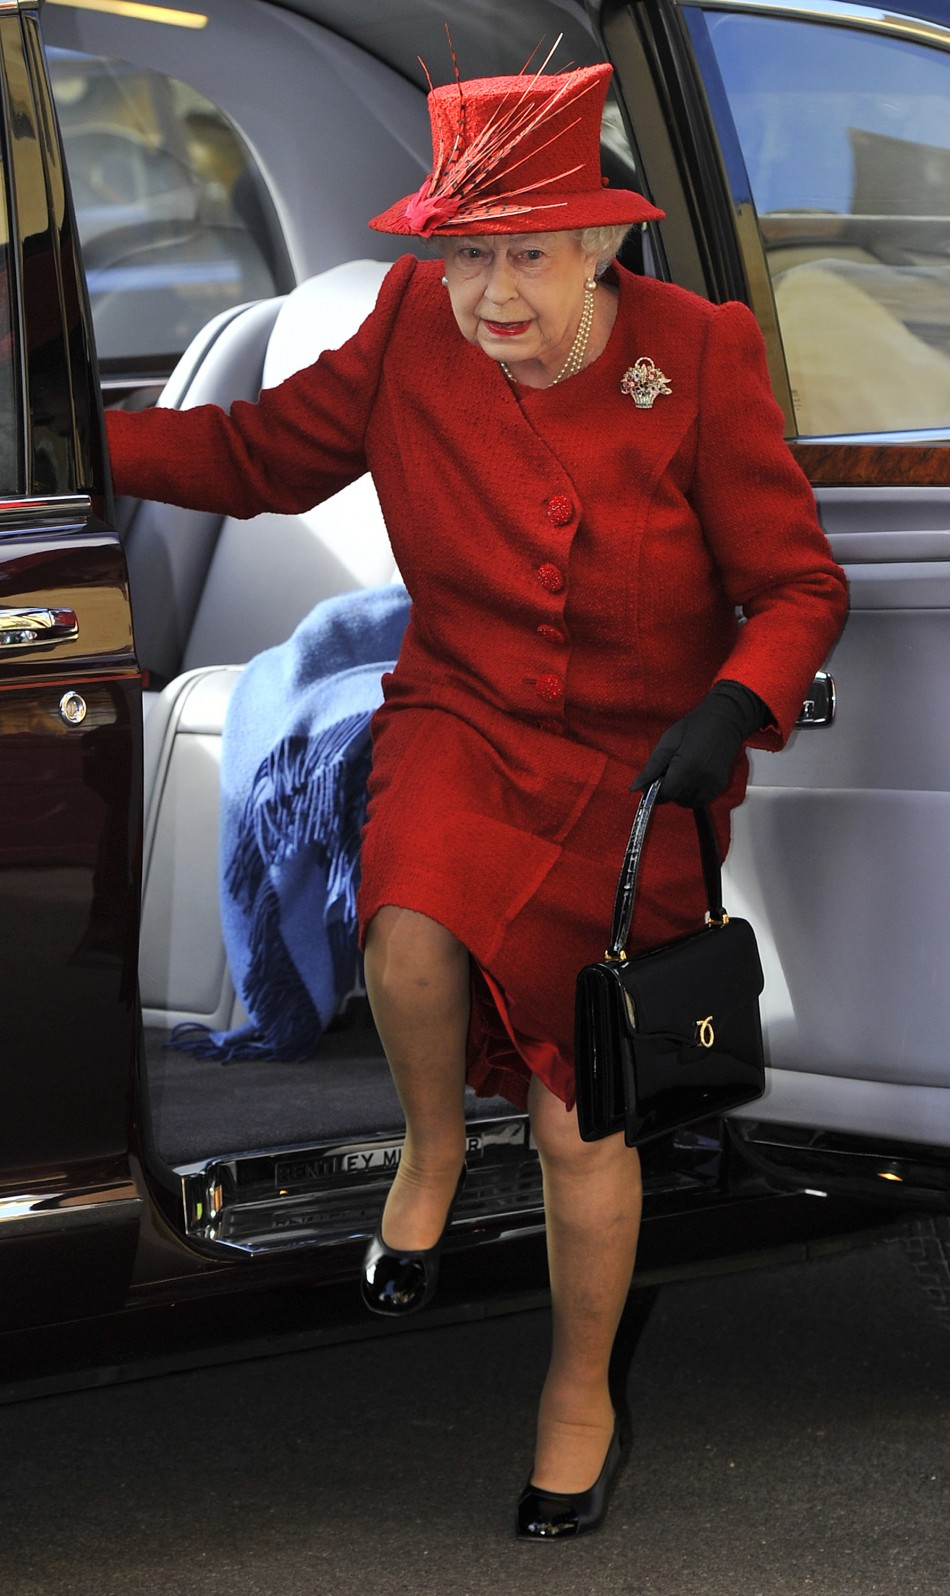 Britain's Queen Elizabeth II leaves St George's Chapel in Windsor Castle after attending an Easter Matins Service, in Windsor, England